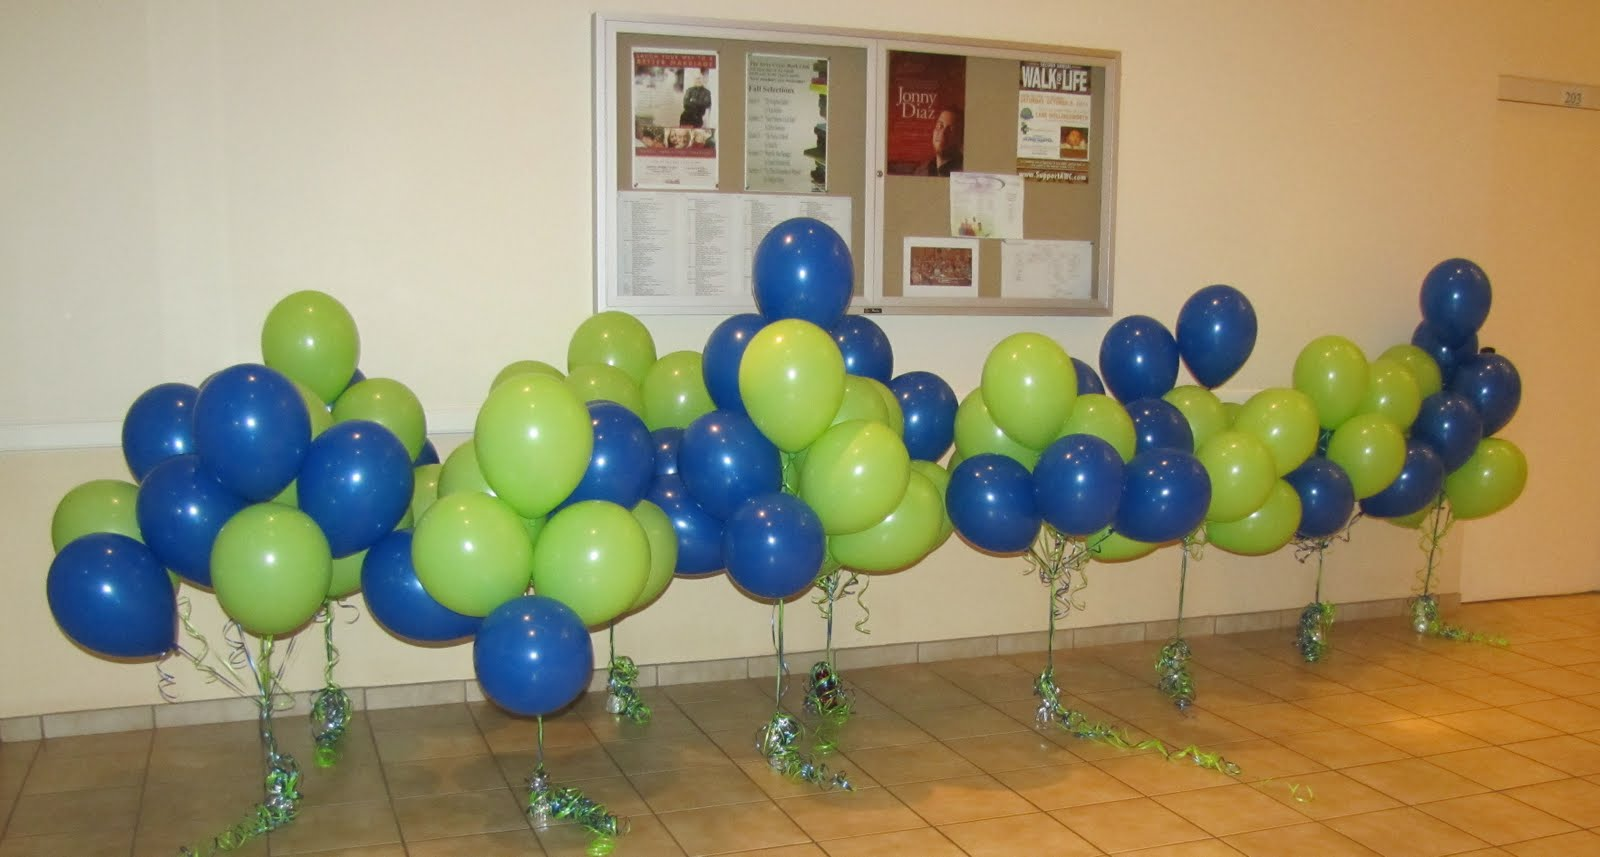 Party people event decorating company october 2011 for Balloon decoration ideas no helium